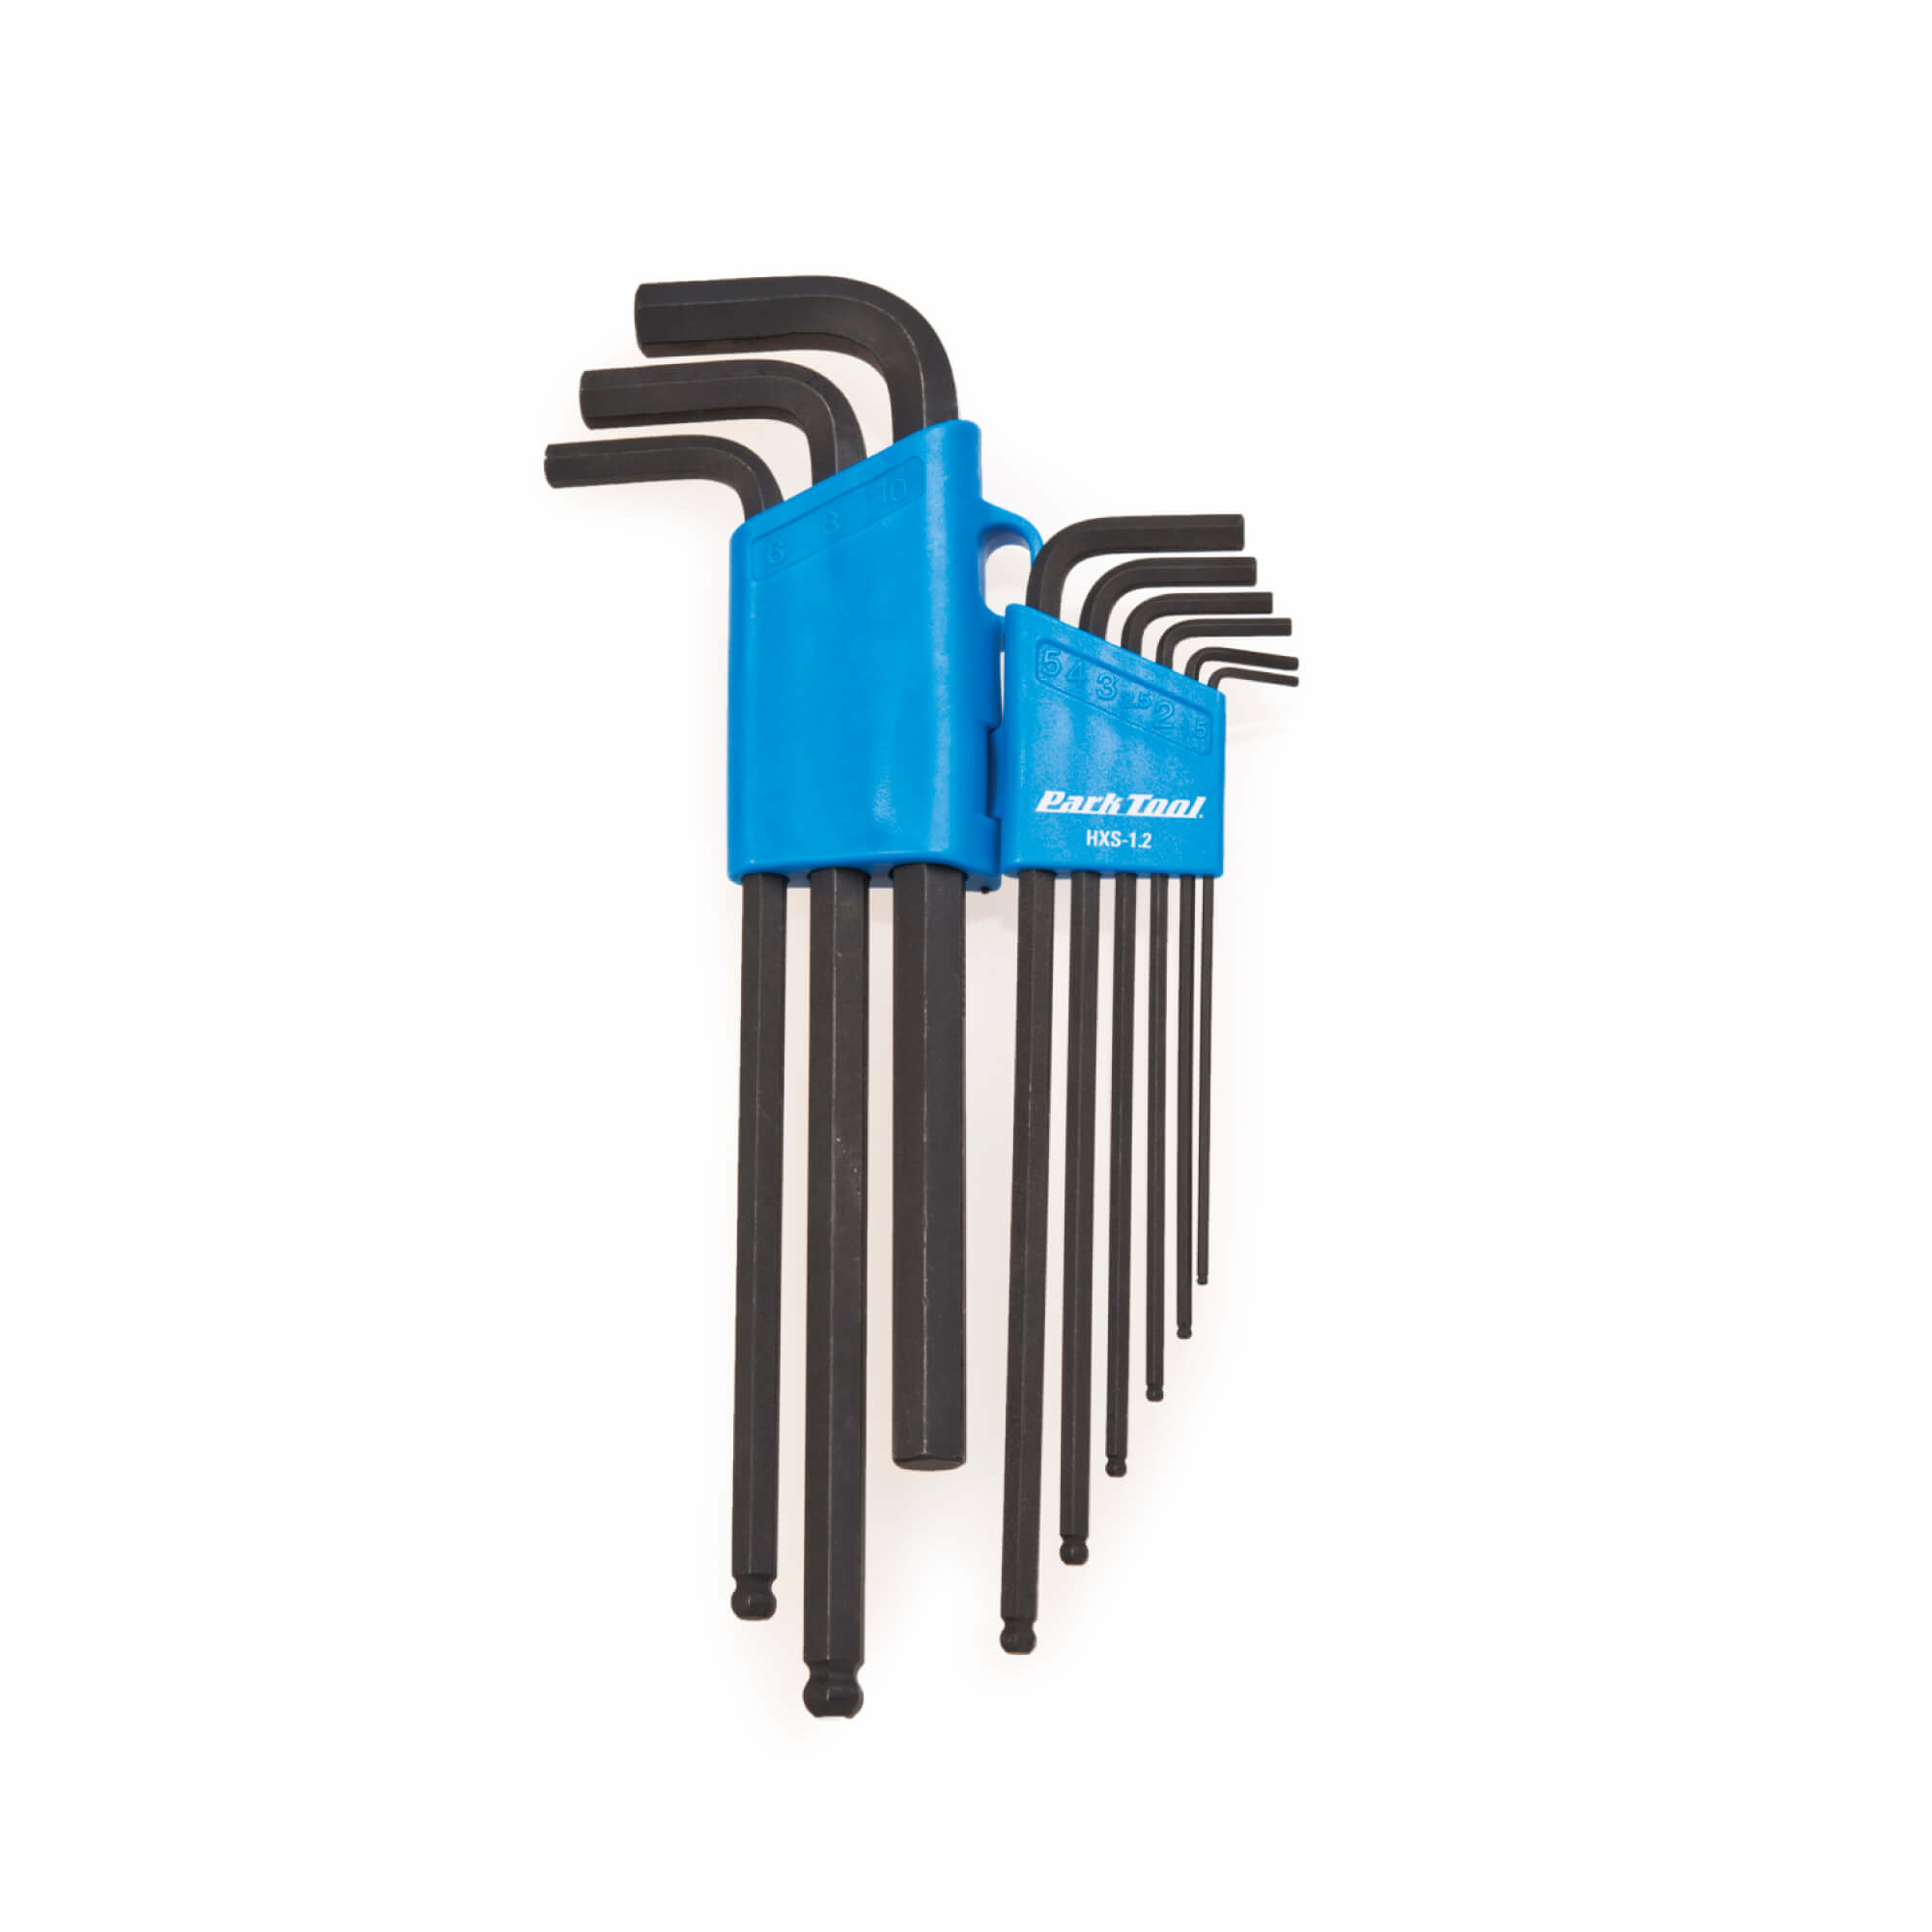 Hex Wrench Set L-Shaped 9pc HXS-1.2-1